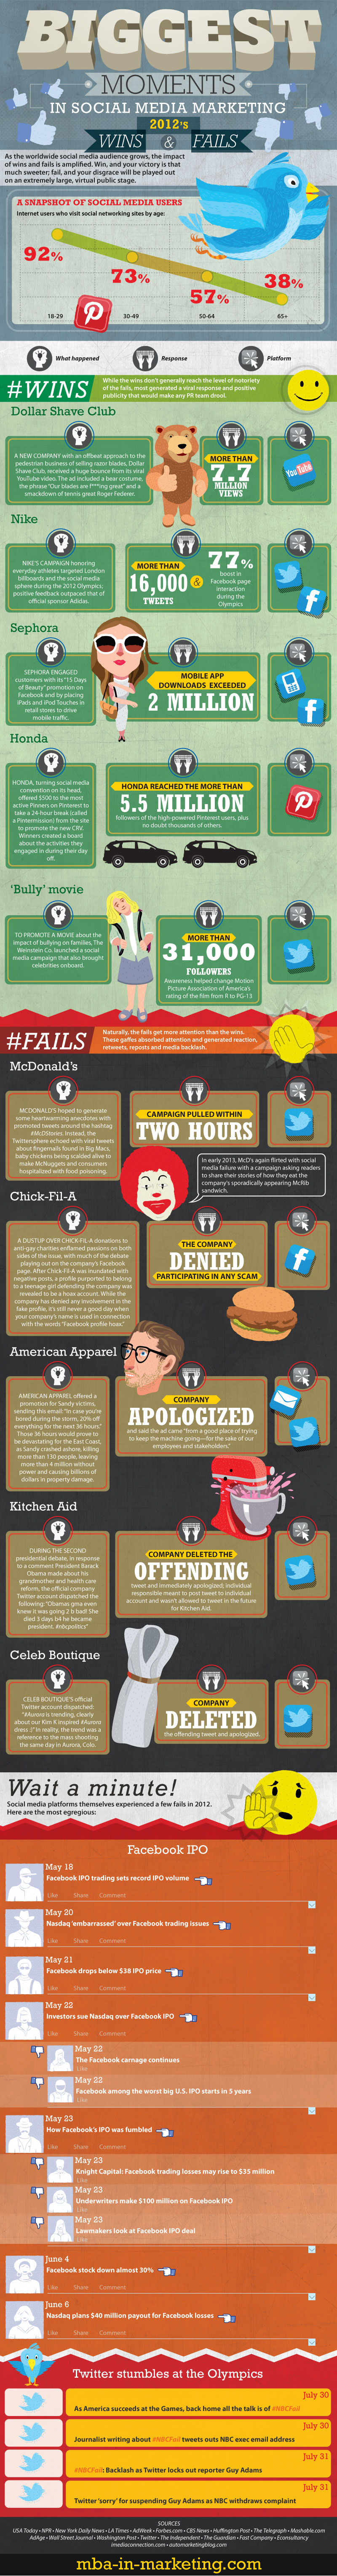 social media fails infographic Social Media Stars and Screw Ups: Why Nike Succeeded and McDonalds was Shamed